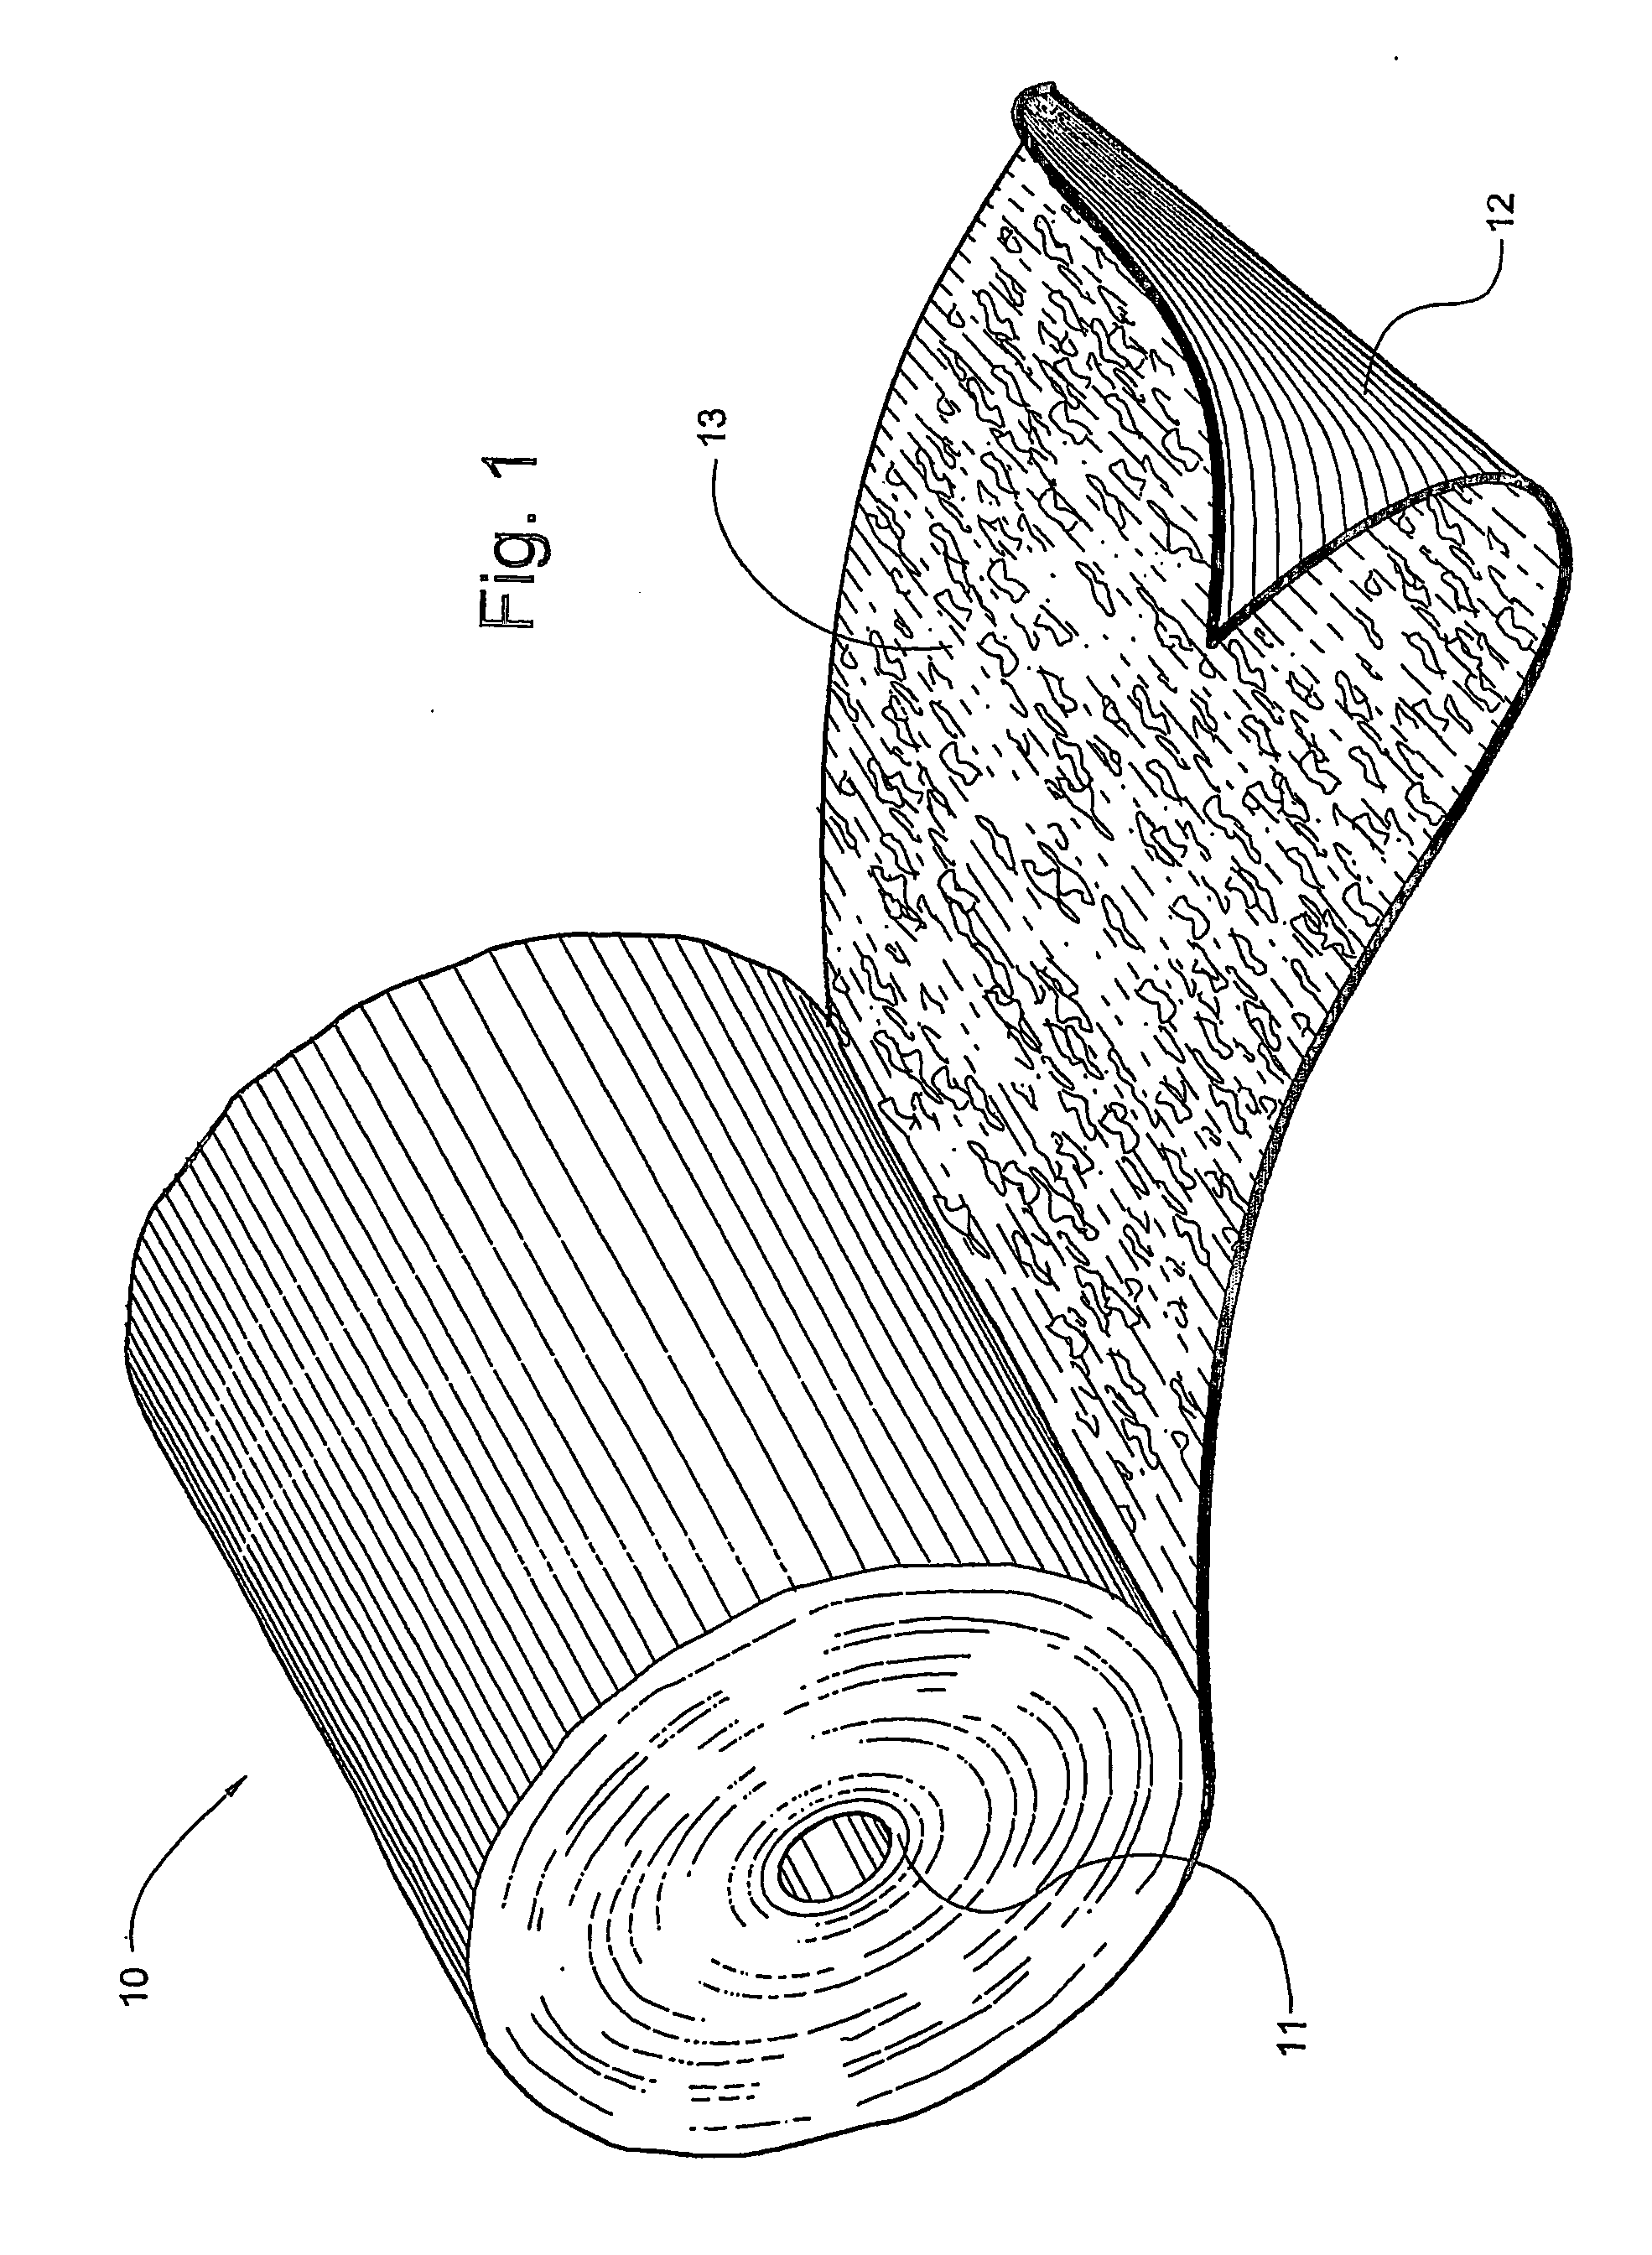 methods to prevent barre in knitted fabric Fabrics susceptible to shrinkage are often preshrunk to avoid fabric puckering in the constructed garment and to avoid problems with fit several methods are used to control shrinkage method use is dependent on the fiber content and fabric construction, the two major factors that affect shrinkage.